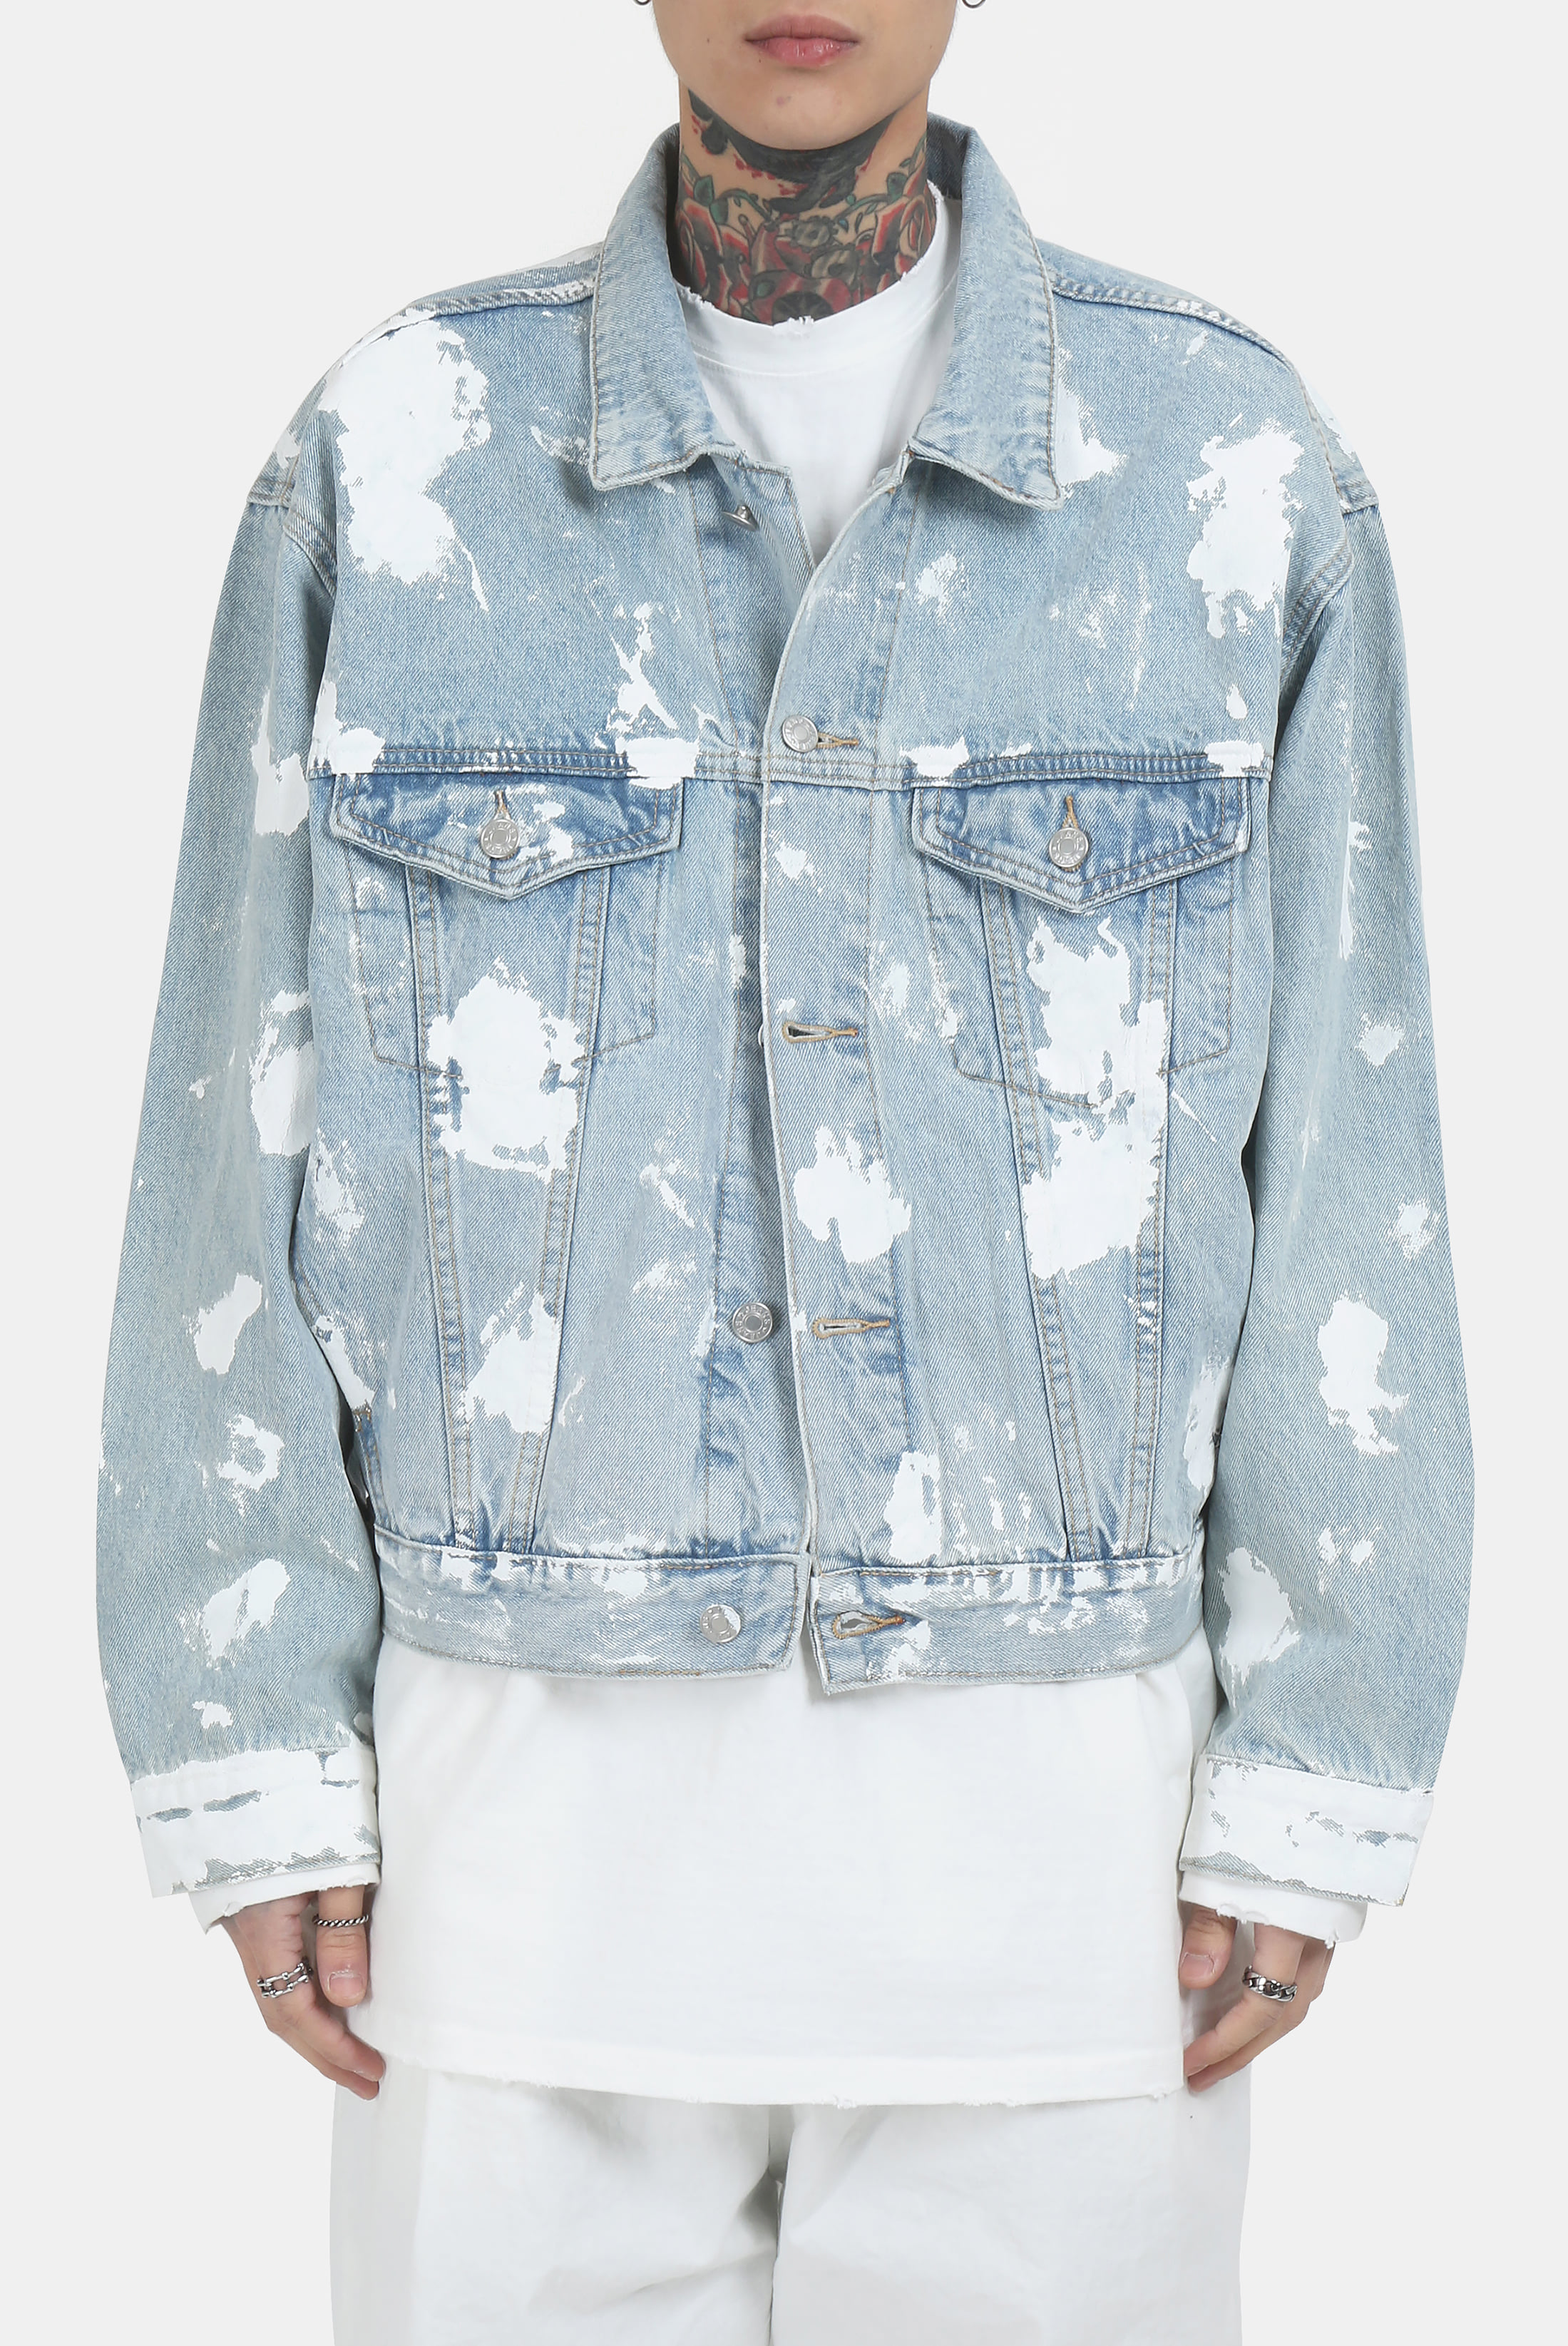 Painting_Petteren Denim_Jacket